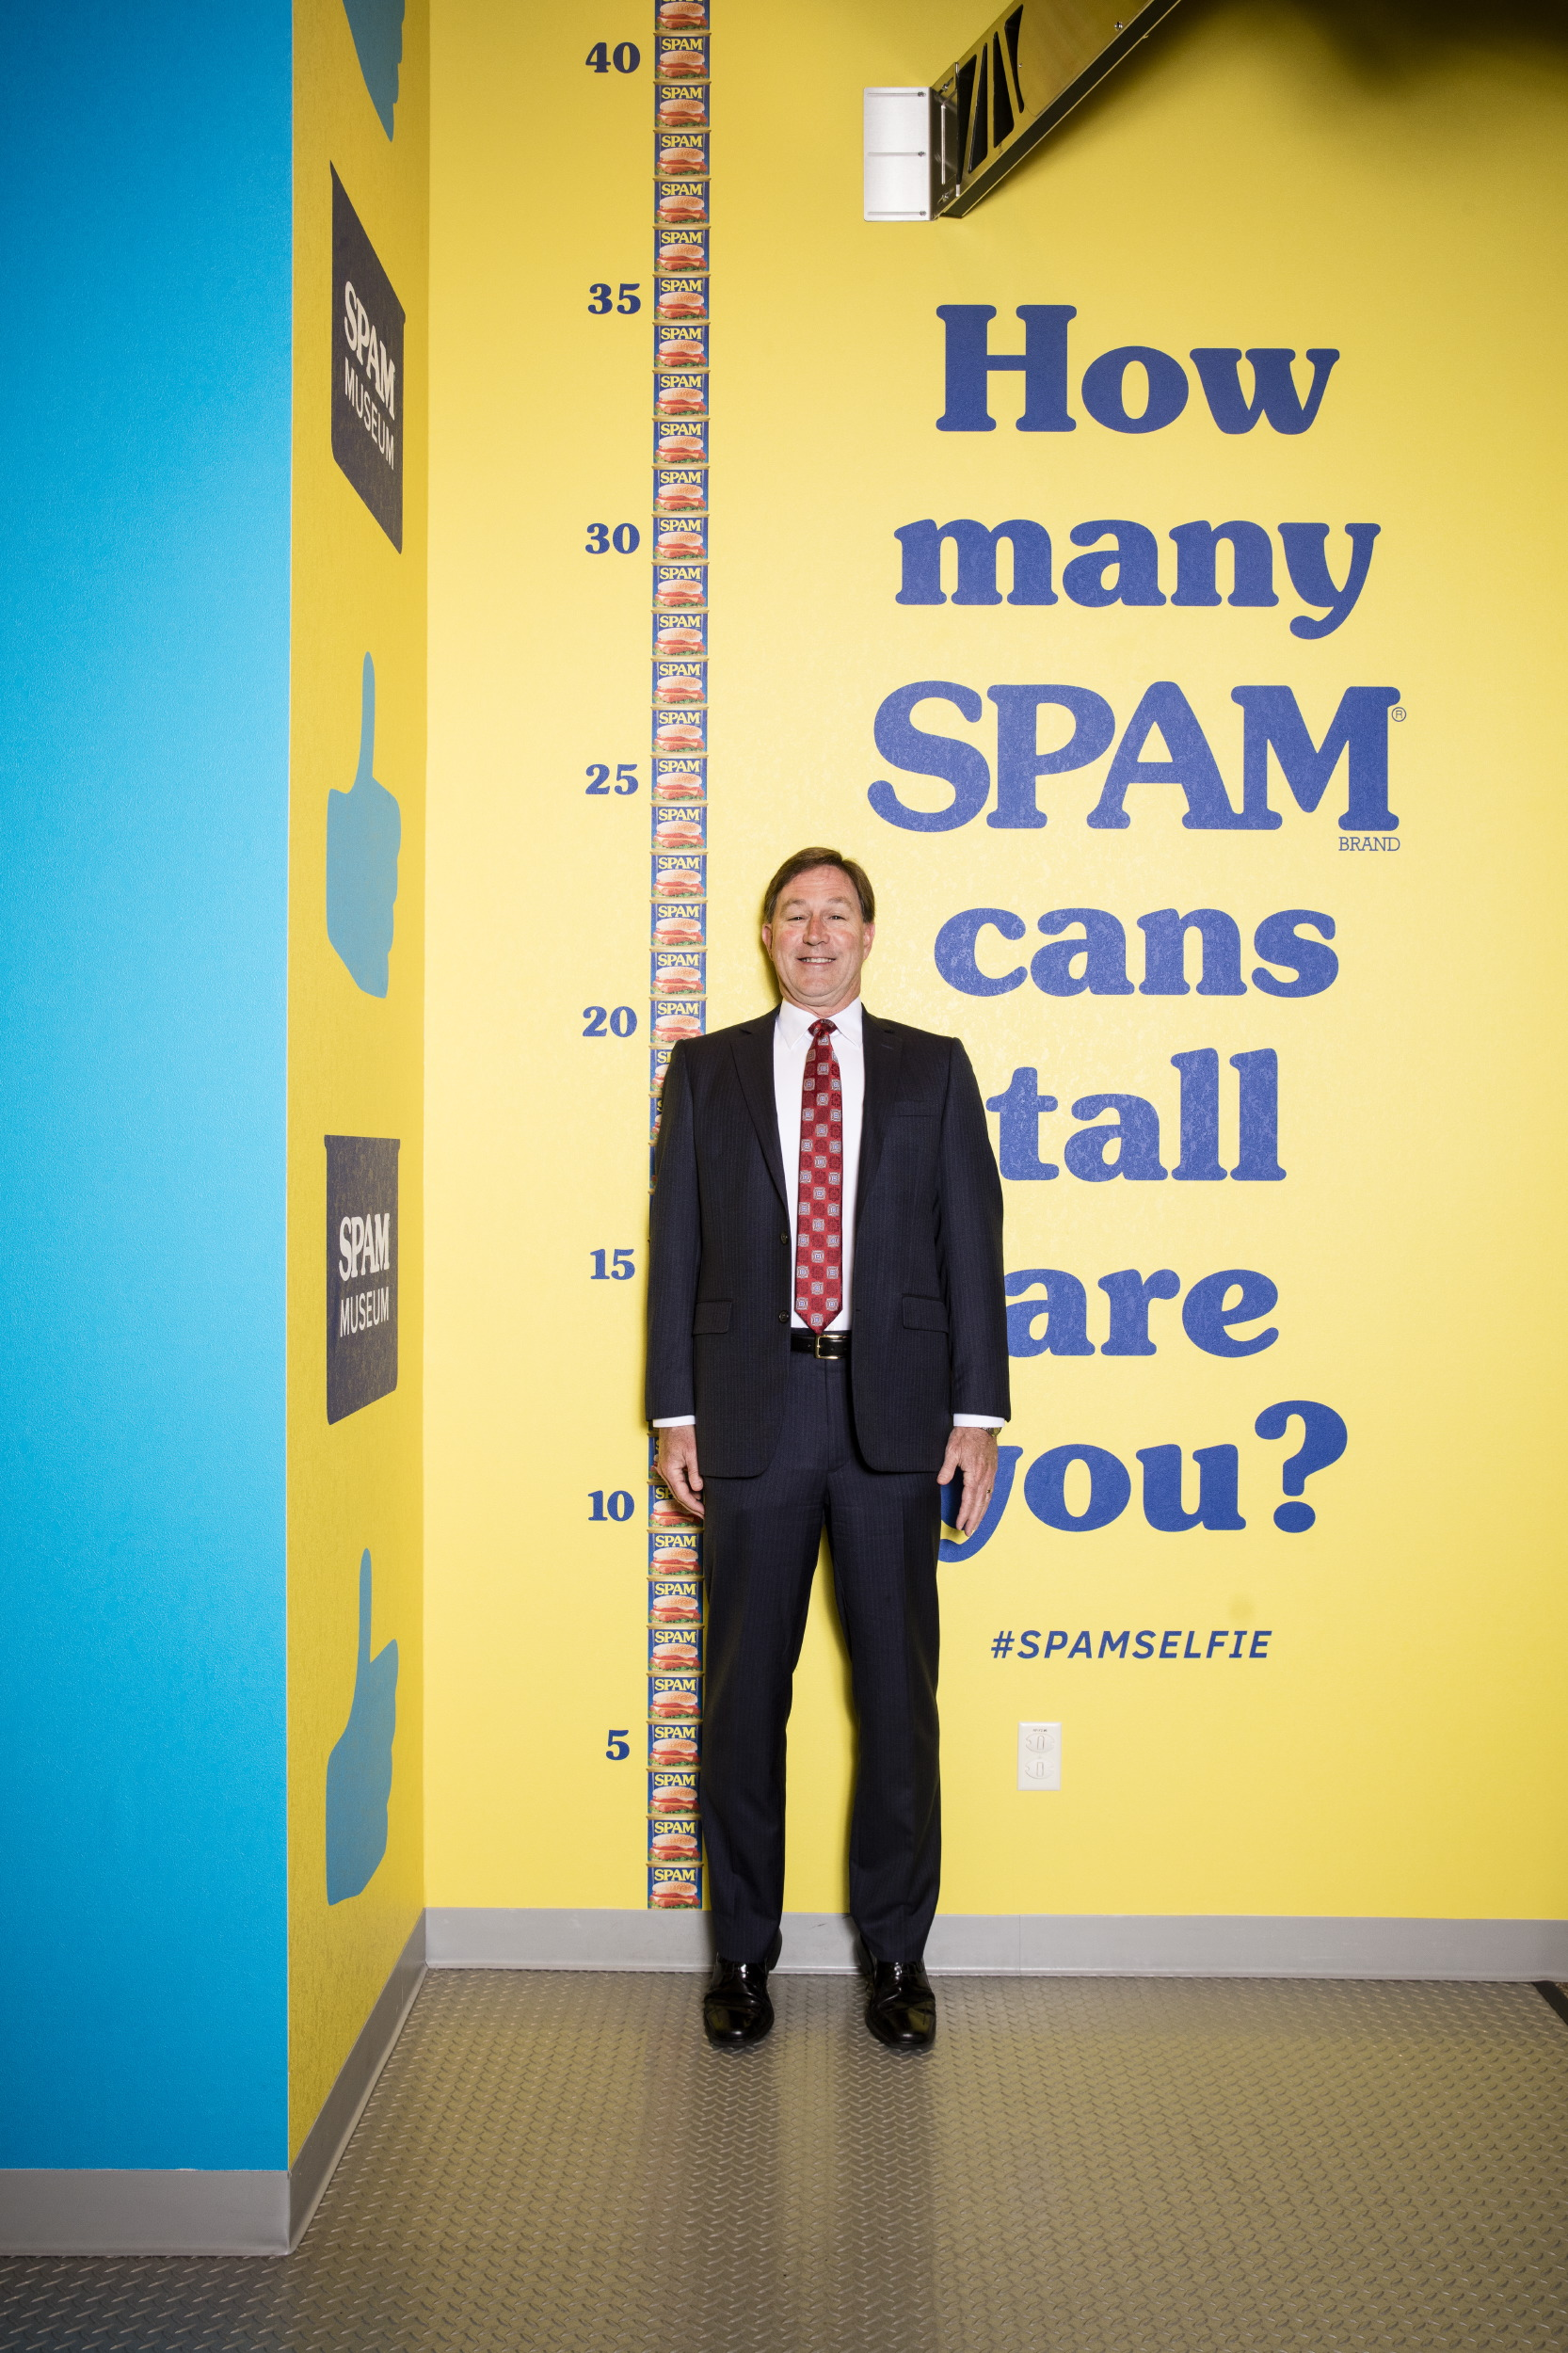 SPAM for Fortune